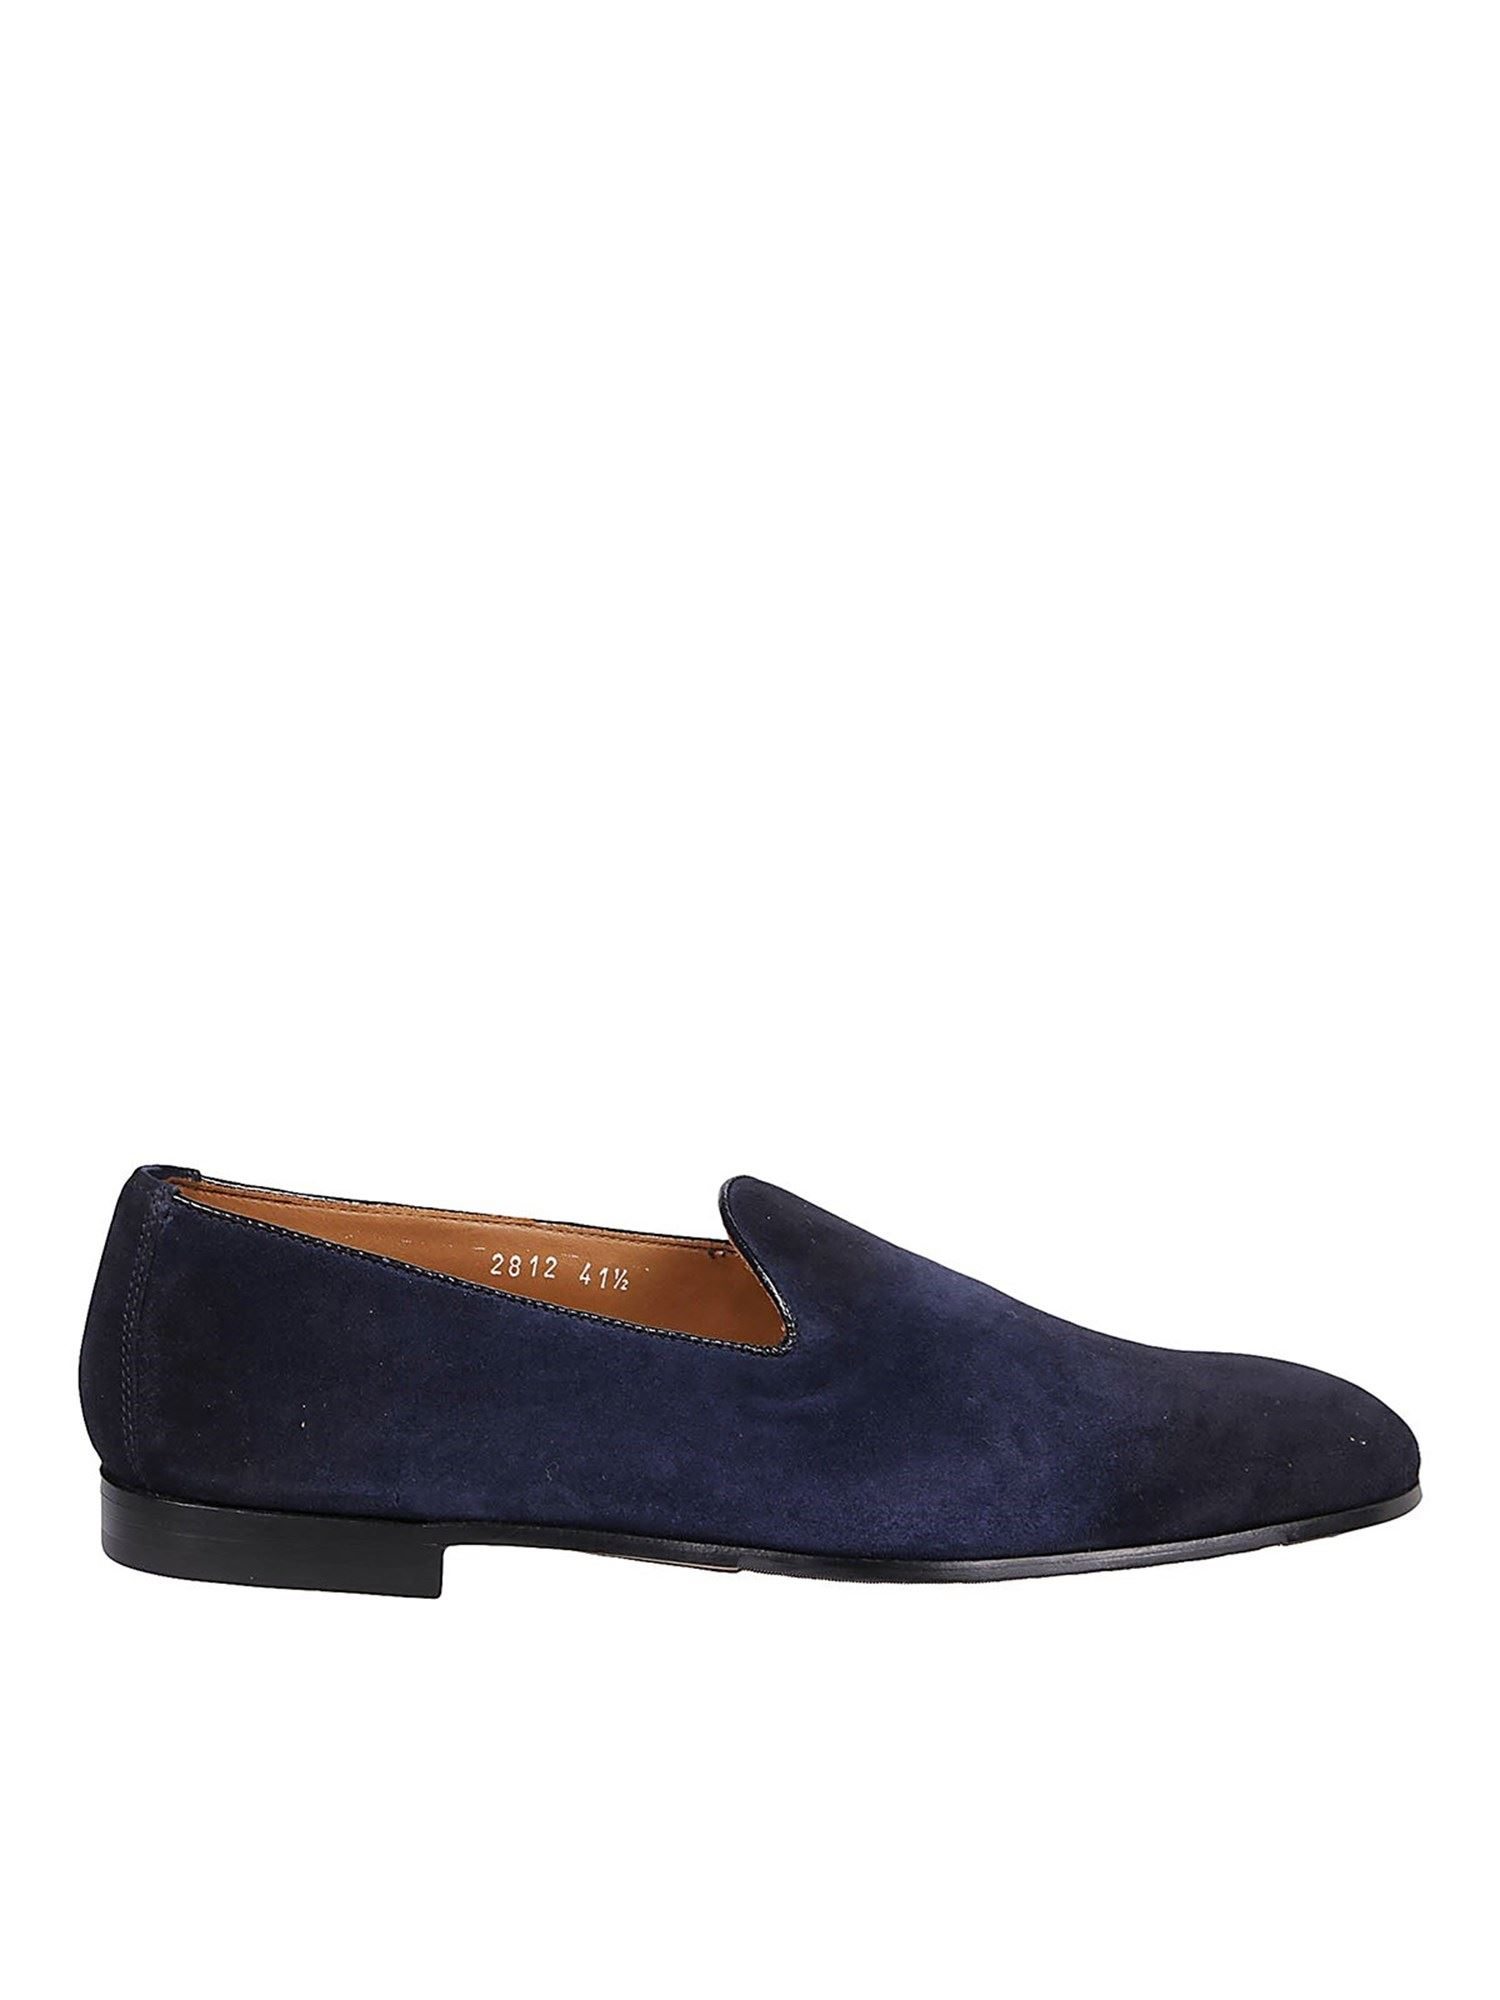 Doucal's SUEDE SLIP-ON LOAFERS IN BLUE